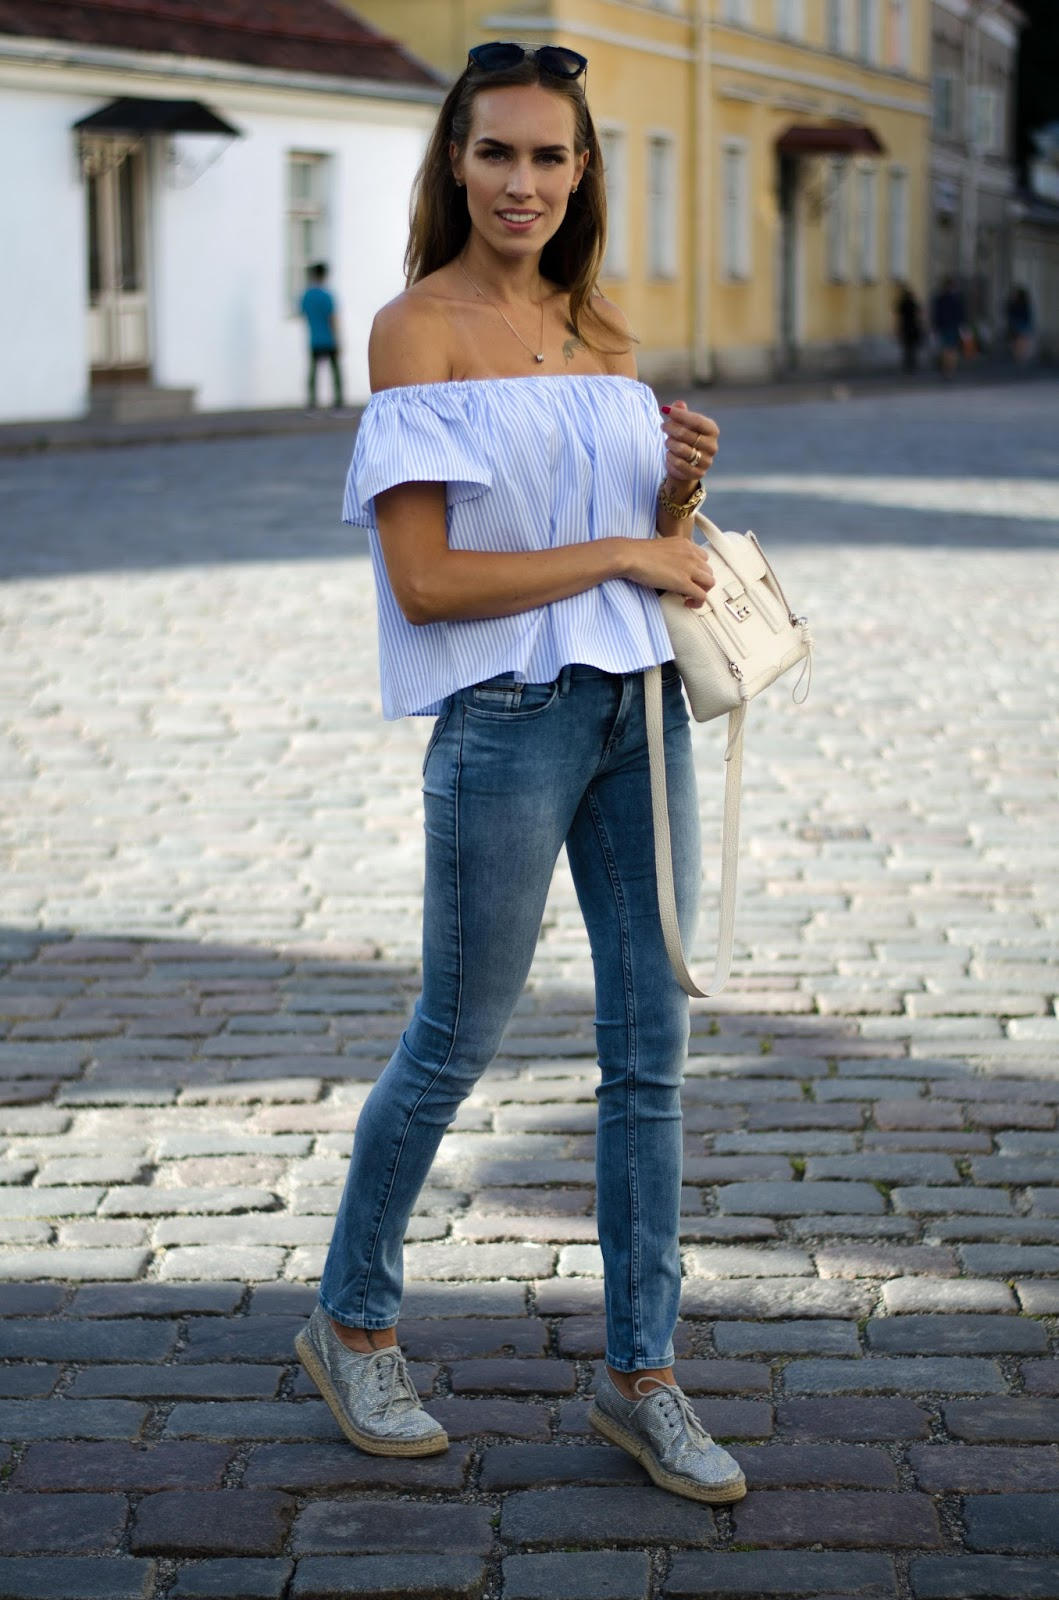 kristjaana mere off shoulder top with jeans outfit